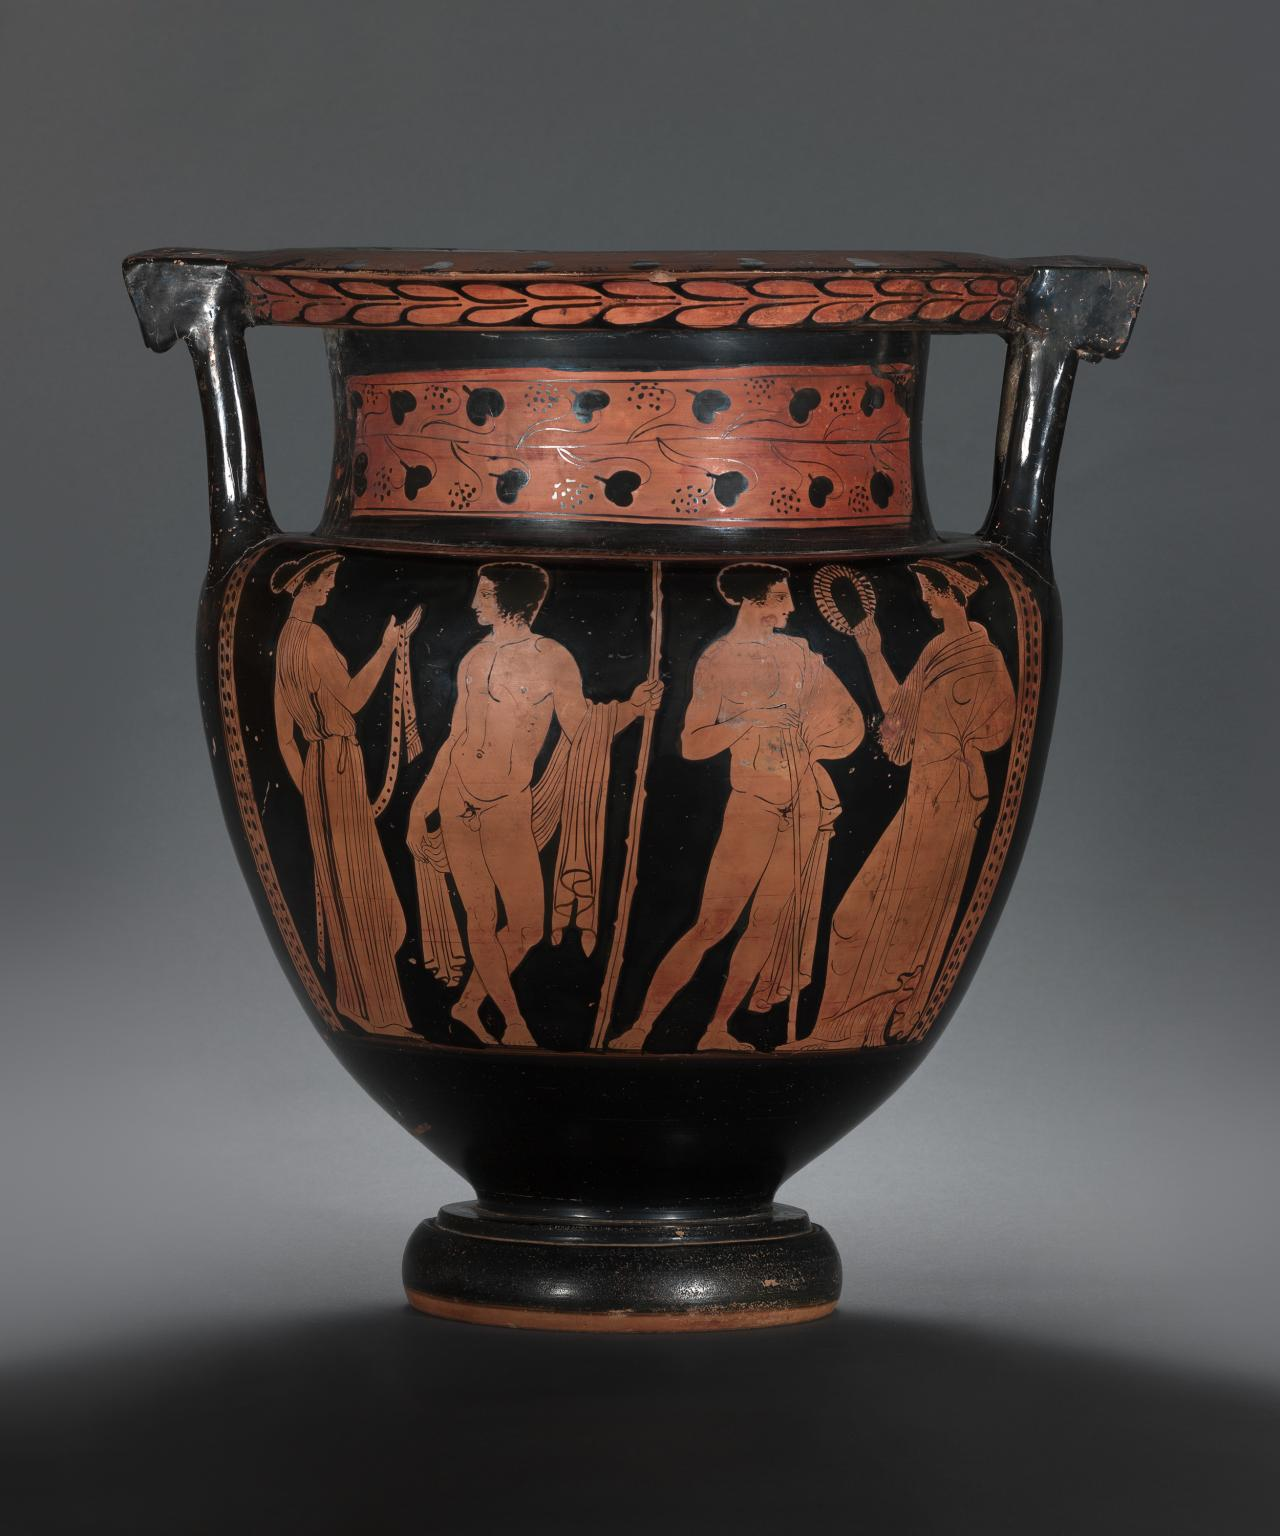 Column krater (Lucanian red-figure ware)